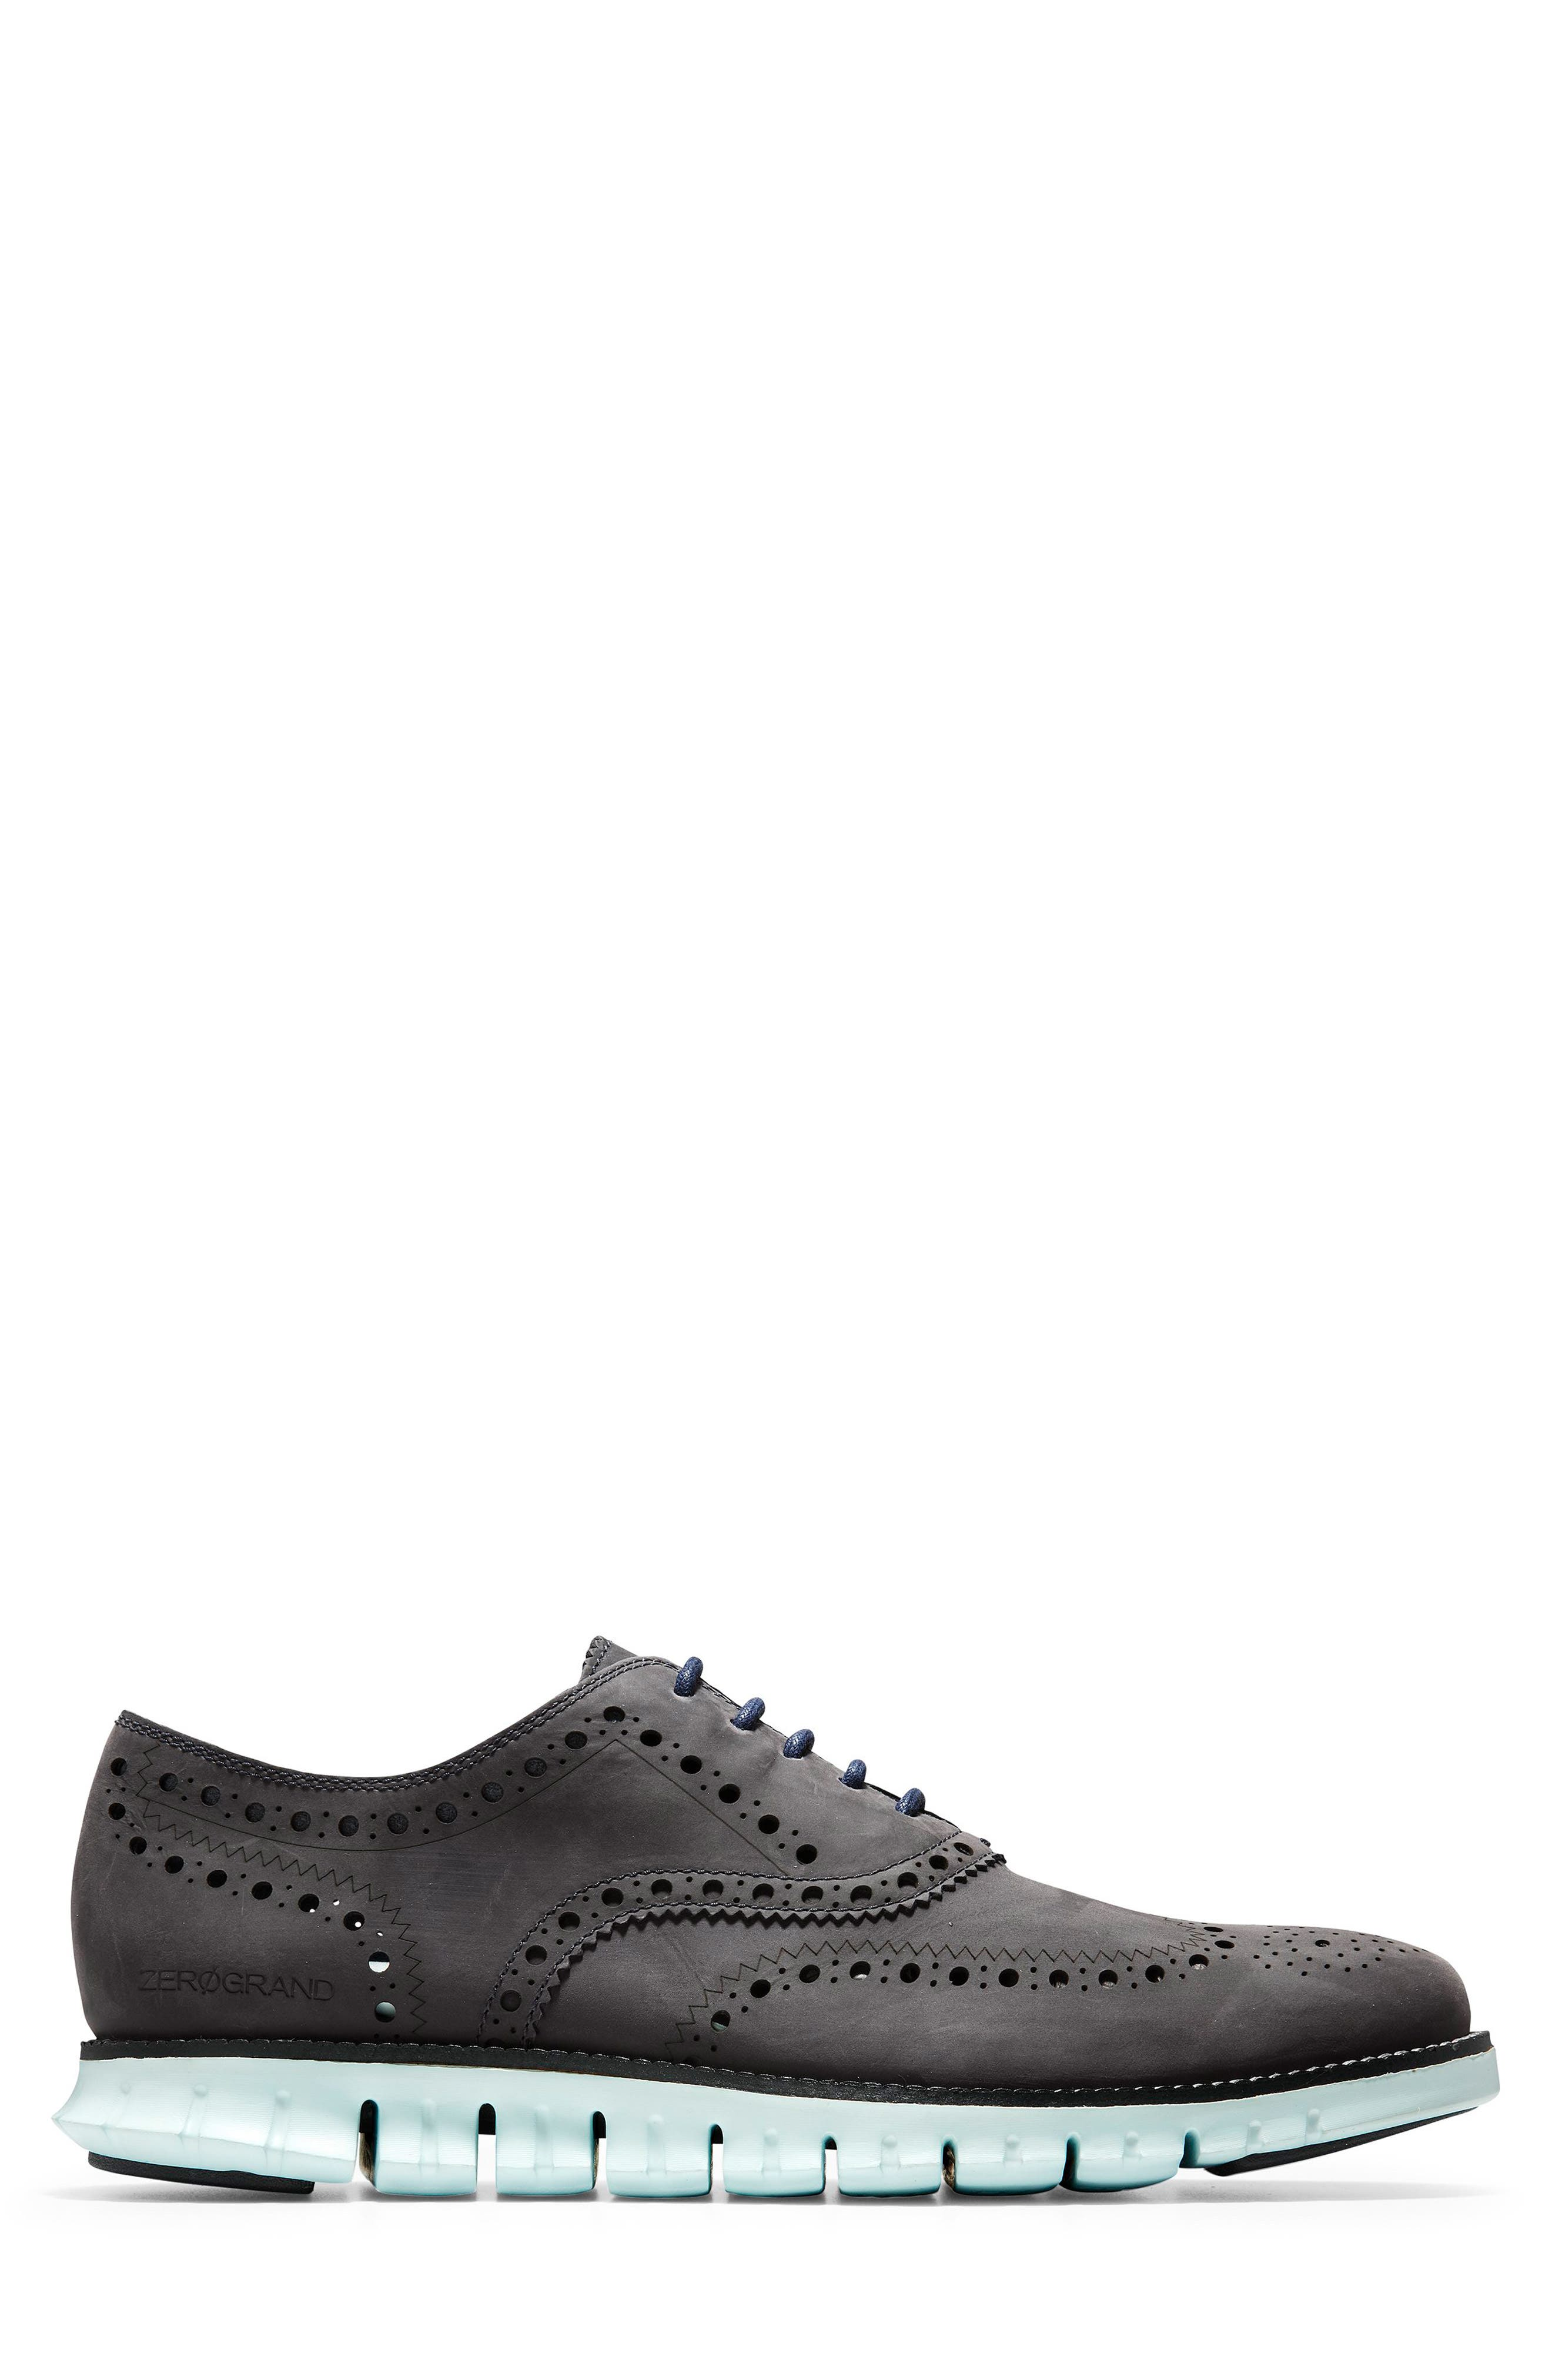 'ZeroGrand' Wingtip Oxford,                             Alternate thumbnail 3, color,                             PEACOAT/ MIST